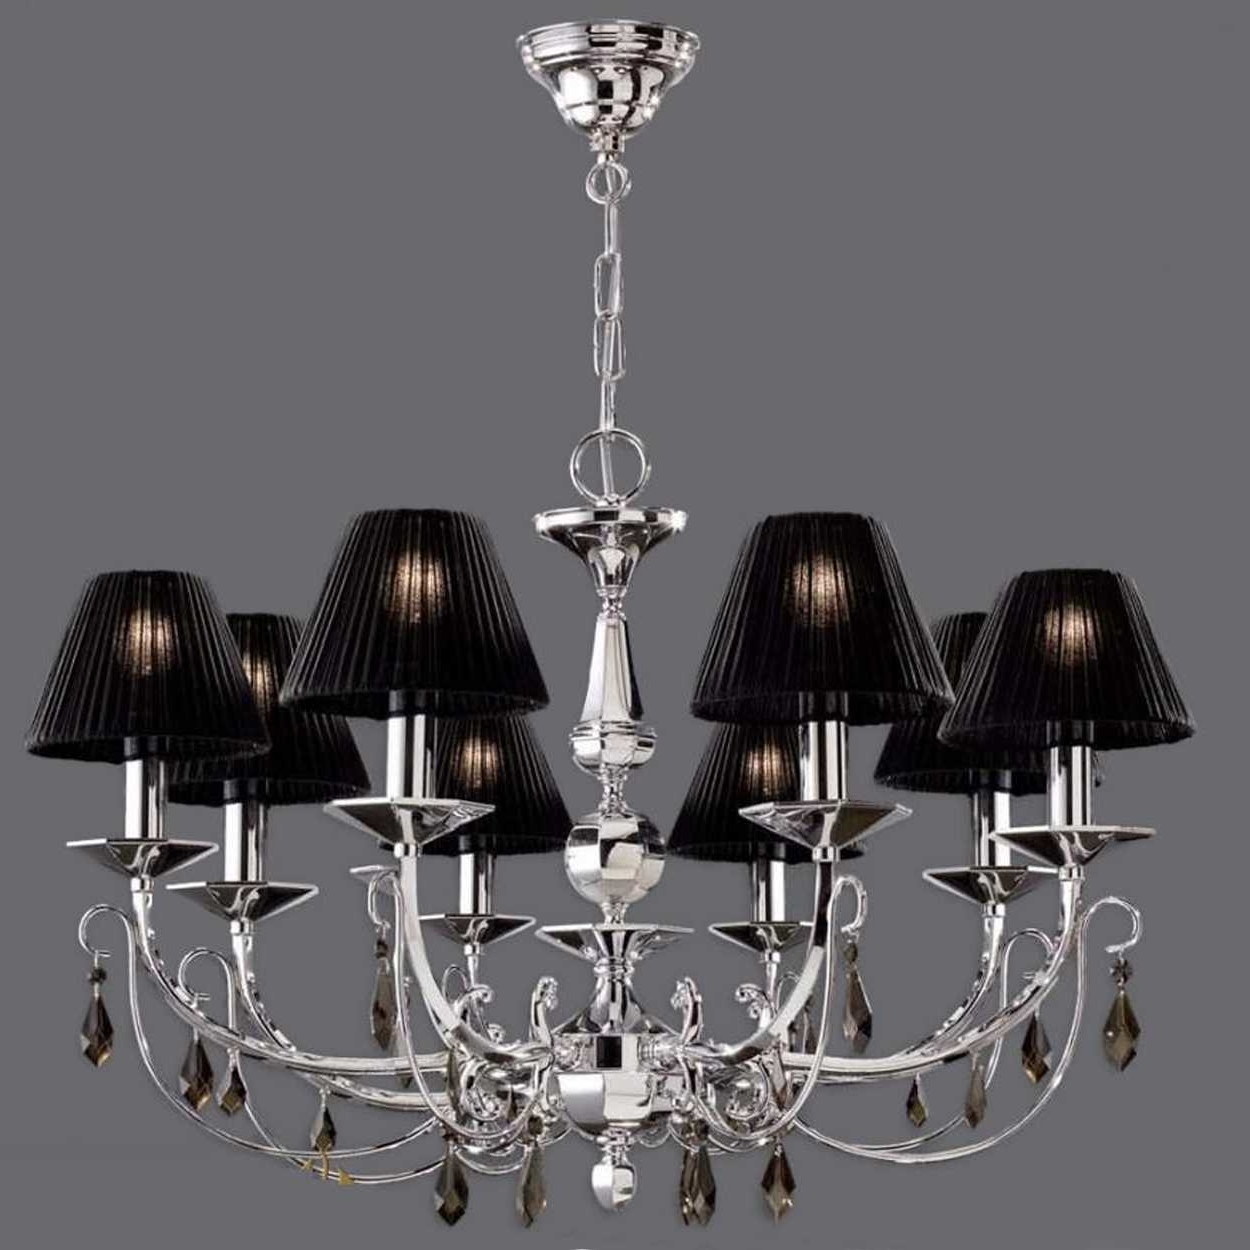 Black Chandeliers With Shades Regarding Current Black Lamp Shade With Crystals Fringed Also Chandeliers Design (View 5 of 20)